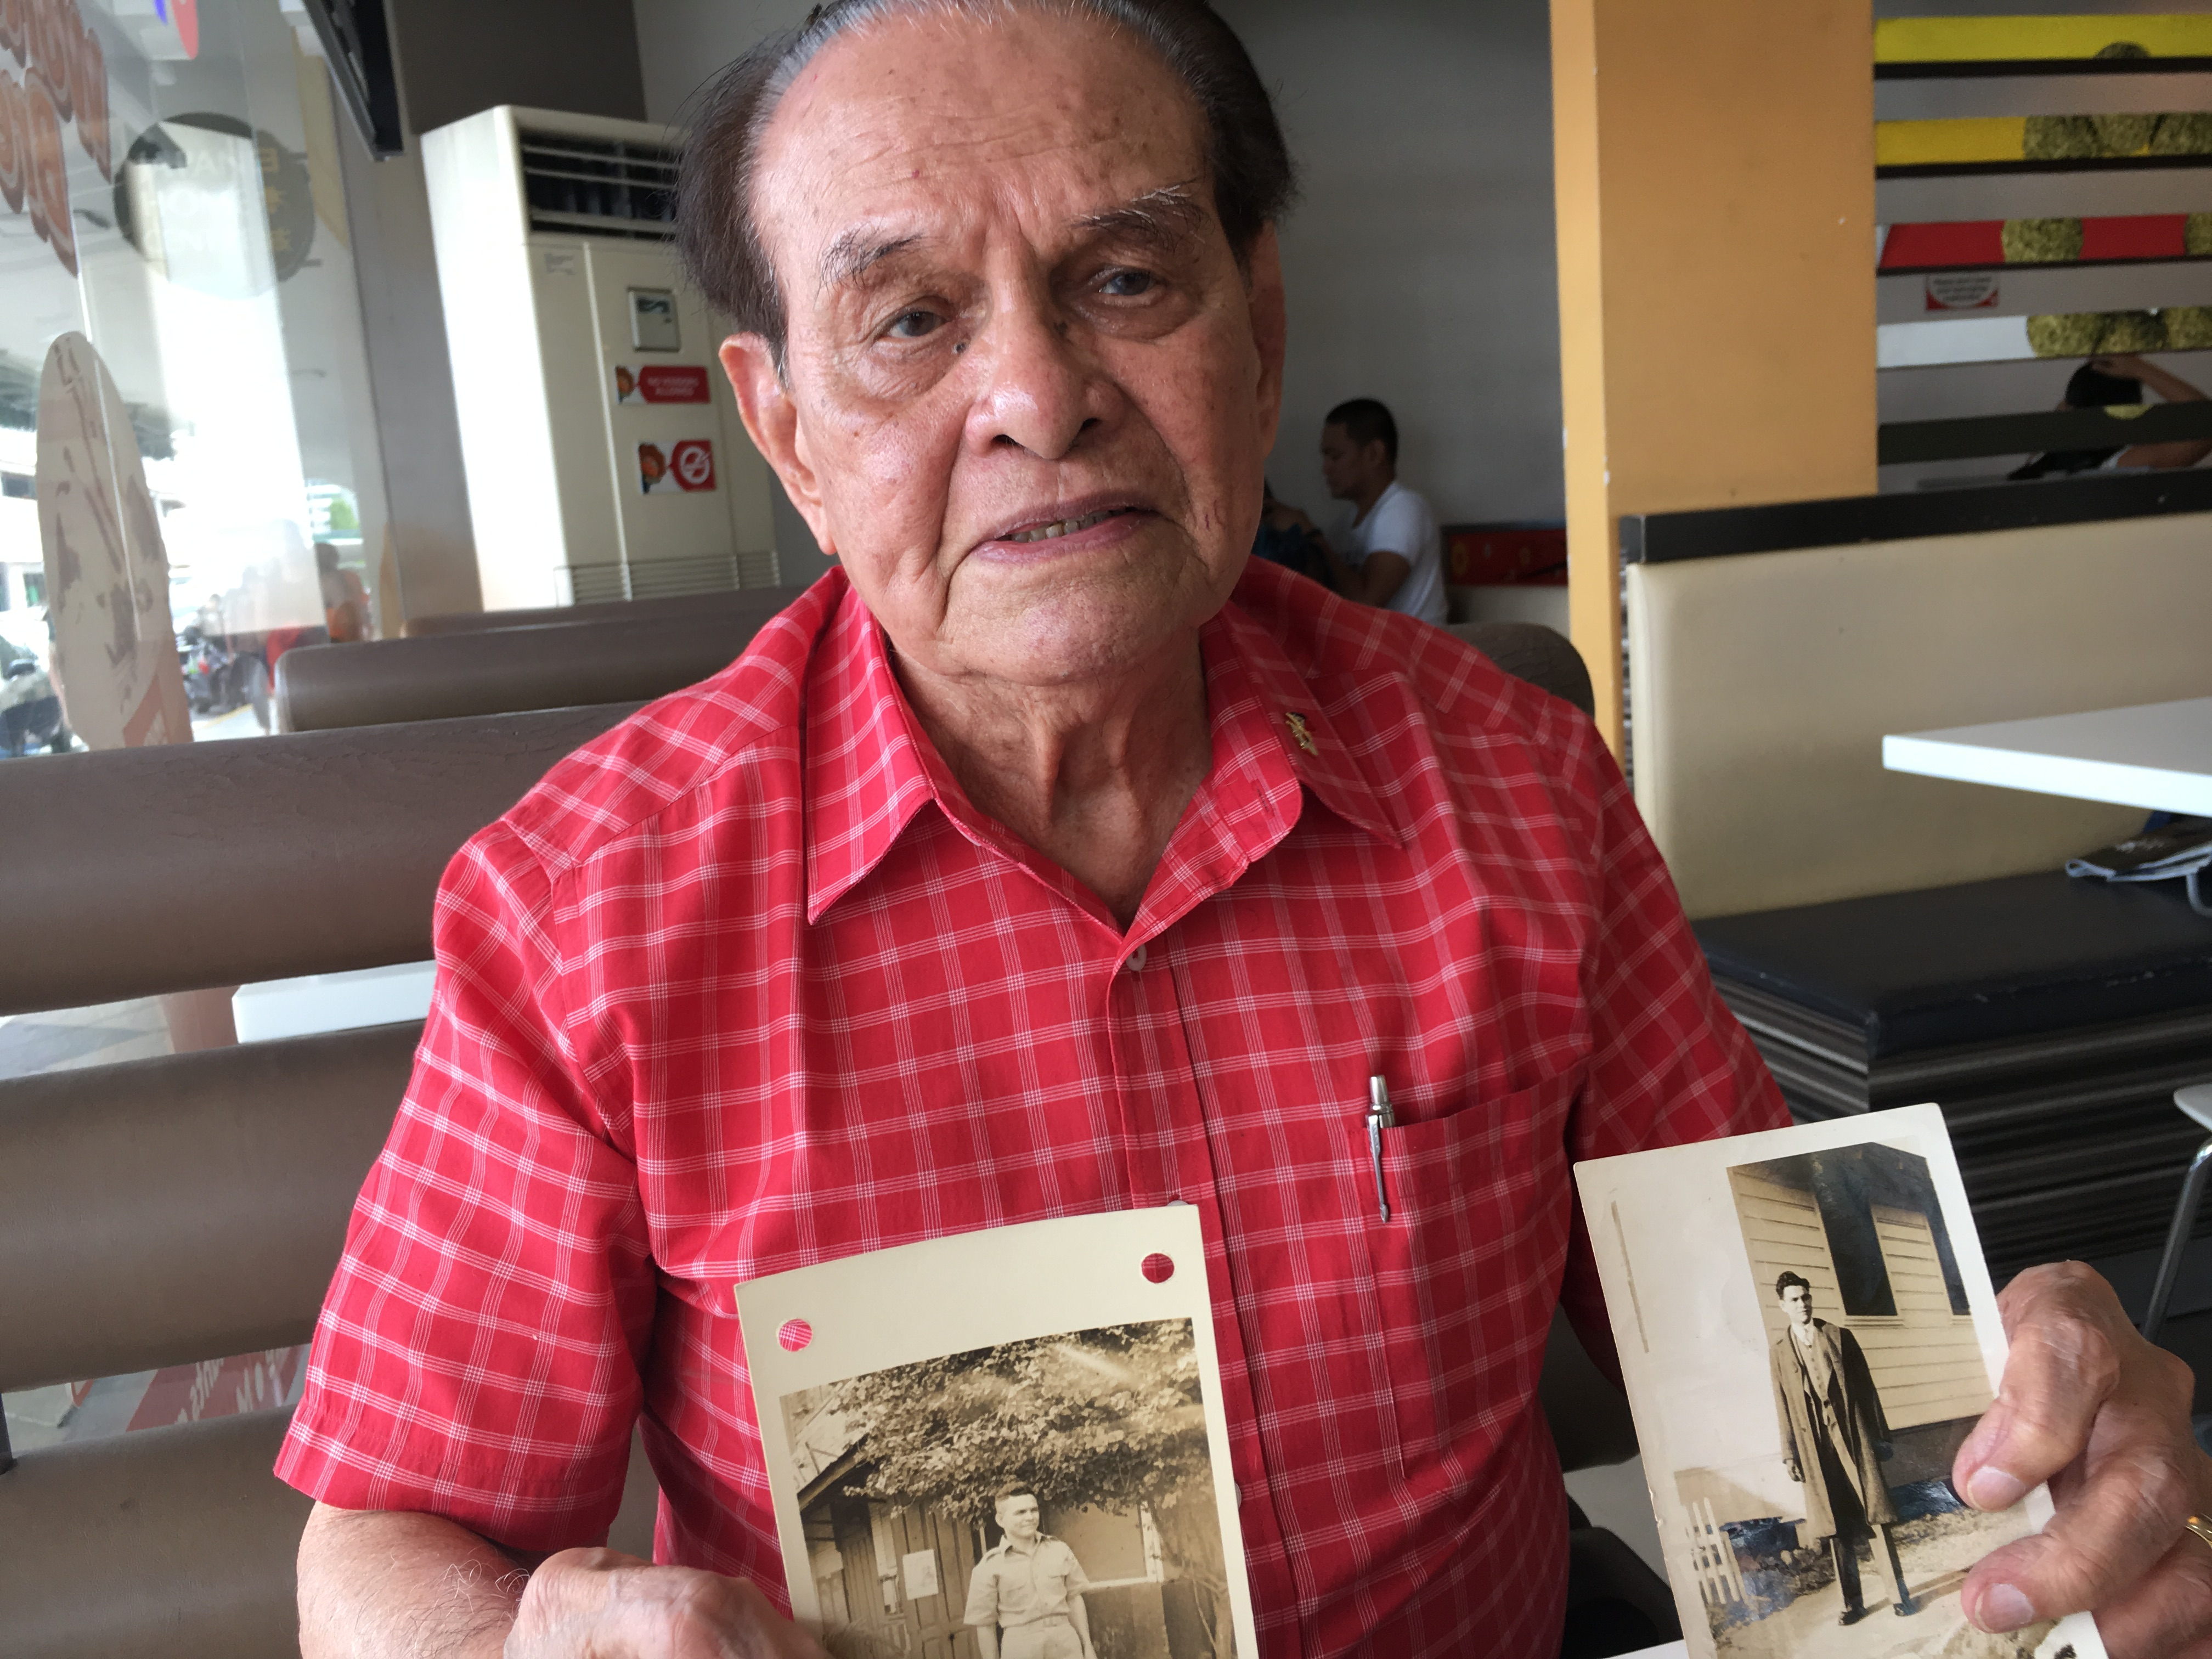 Caption: Maximo Purisima Young, 97, displays photographs from his military service. He helped transport supplies and troops in World War II, then fought as a guerilla alongside American soldiers., Credit: Dorian Merina/American Homefront